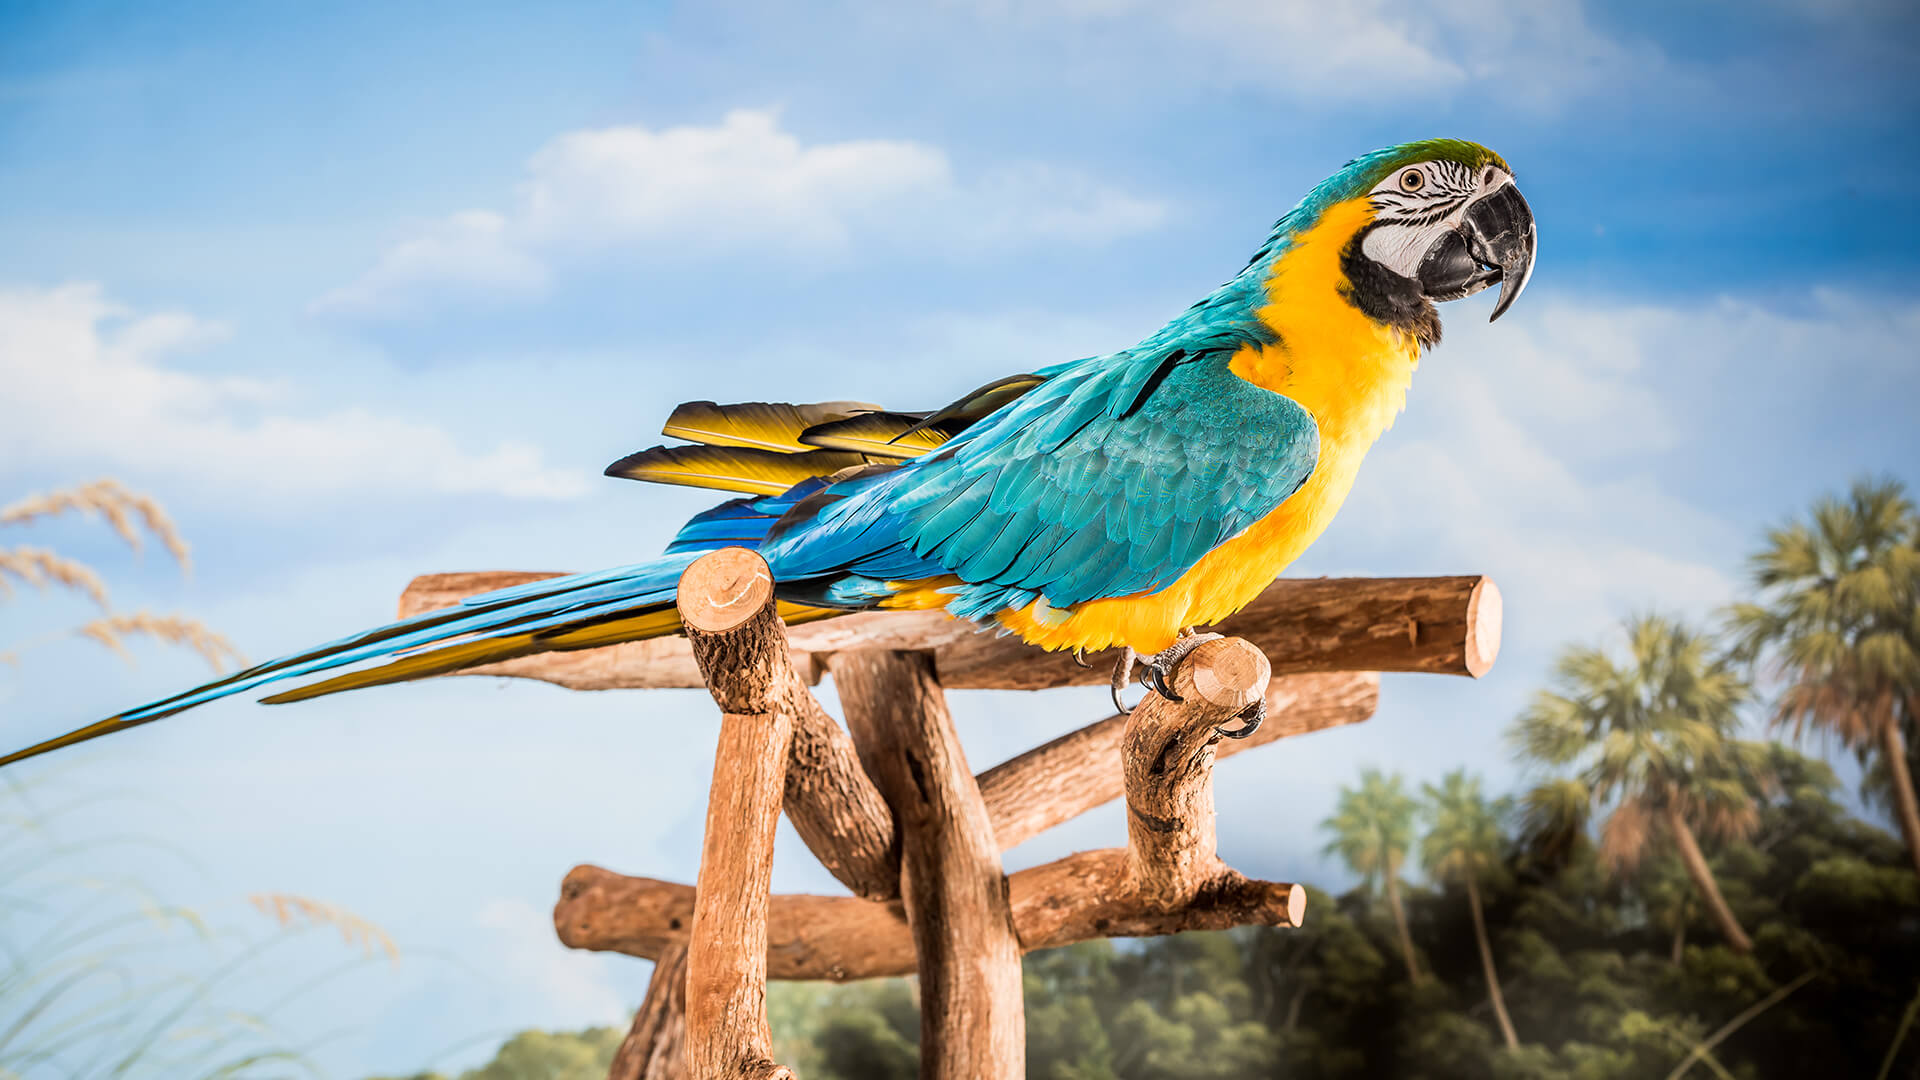 Image of Macaw named Captain on perch